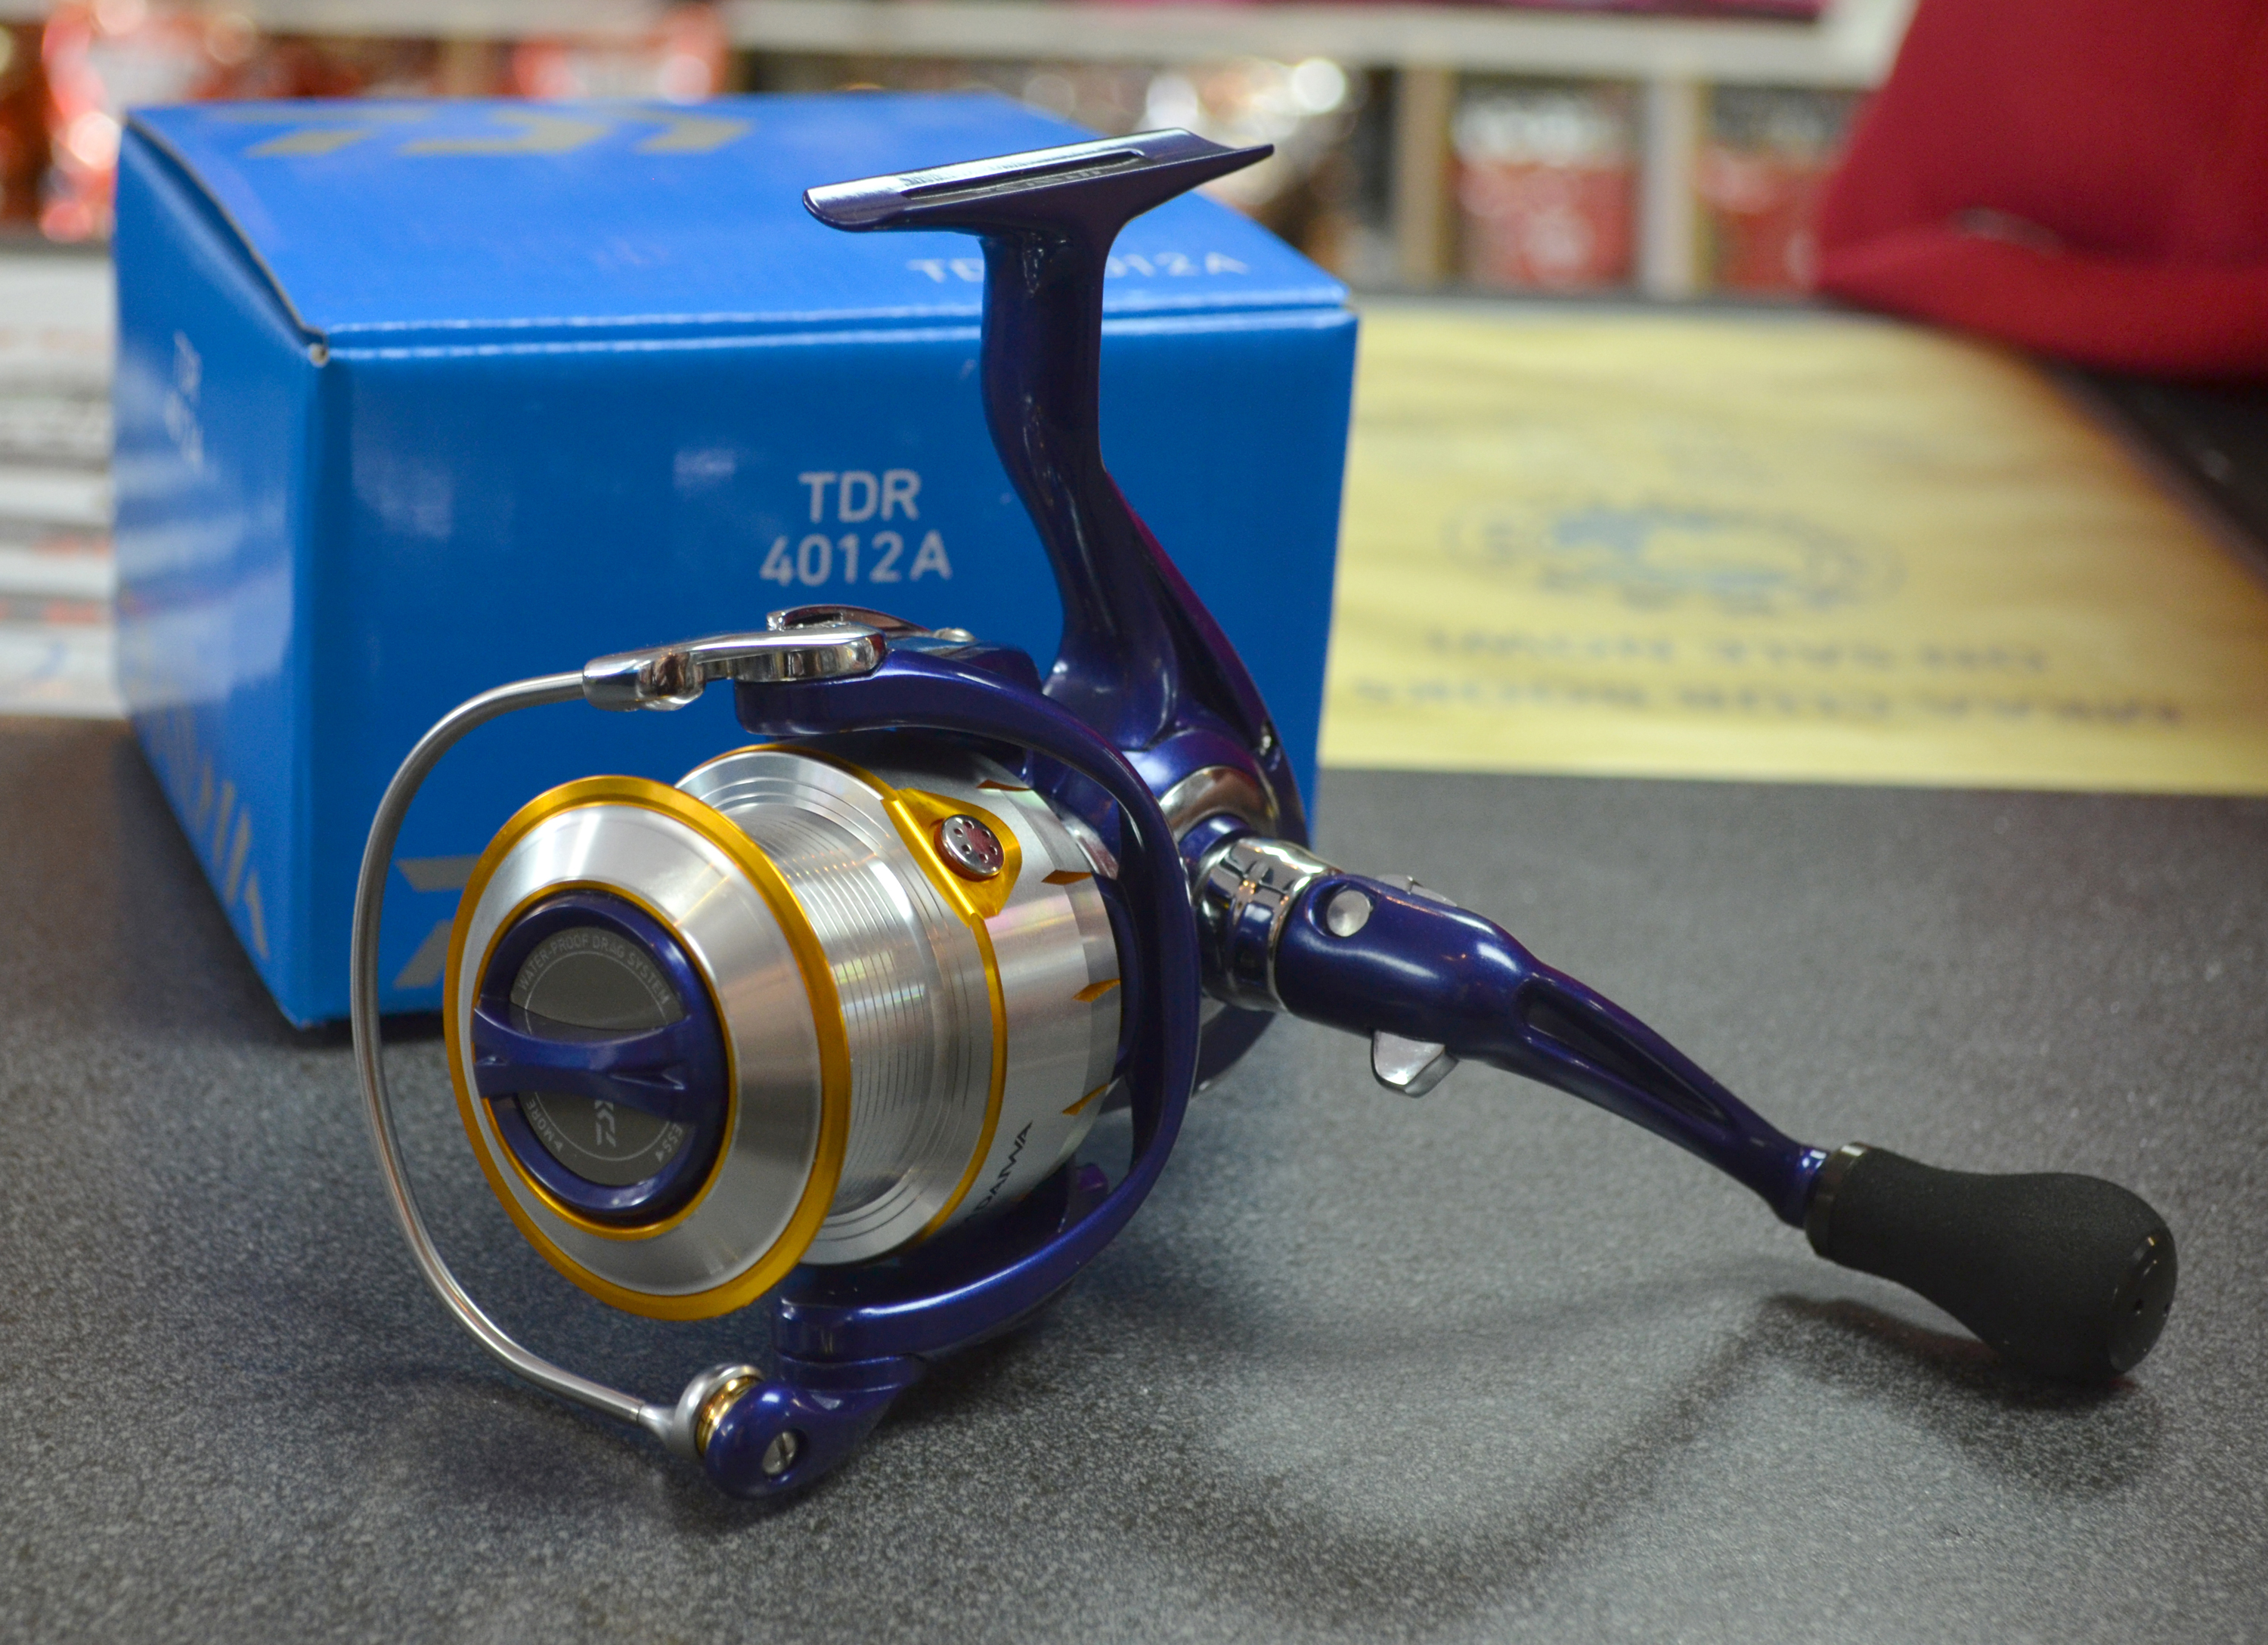 The New DAIWA TDR 4012A Reel finished with a Quick Drag Spool and Mag Sealed!